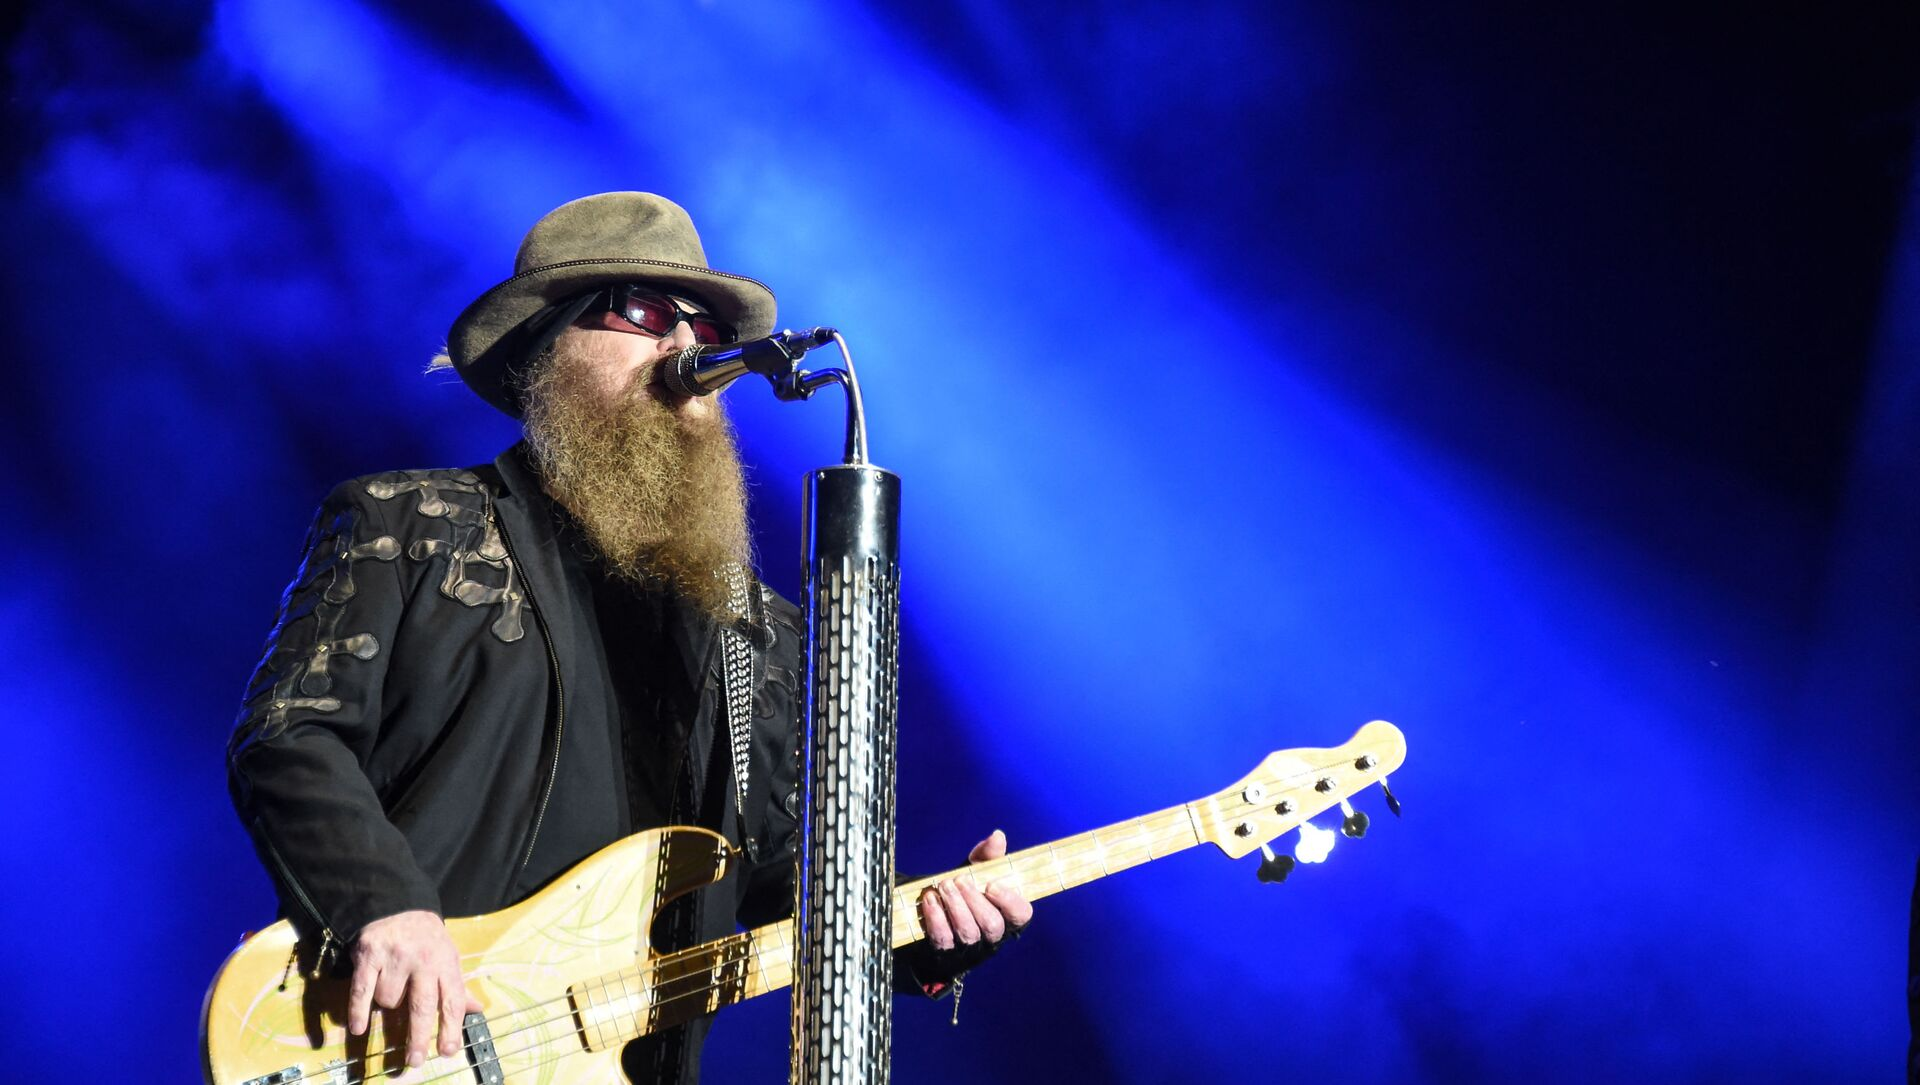 Member of the US band ZZ Top, Dusty Hill performs on the stage during the 28th Eurockeennes rock music festival on July 3, 2016 in Belfort, eastern France. - Sputnik International, 1920, 28.07.2021